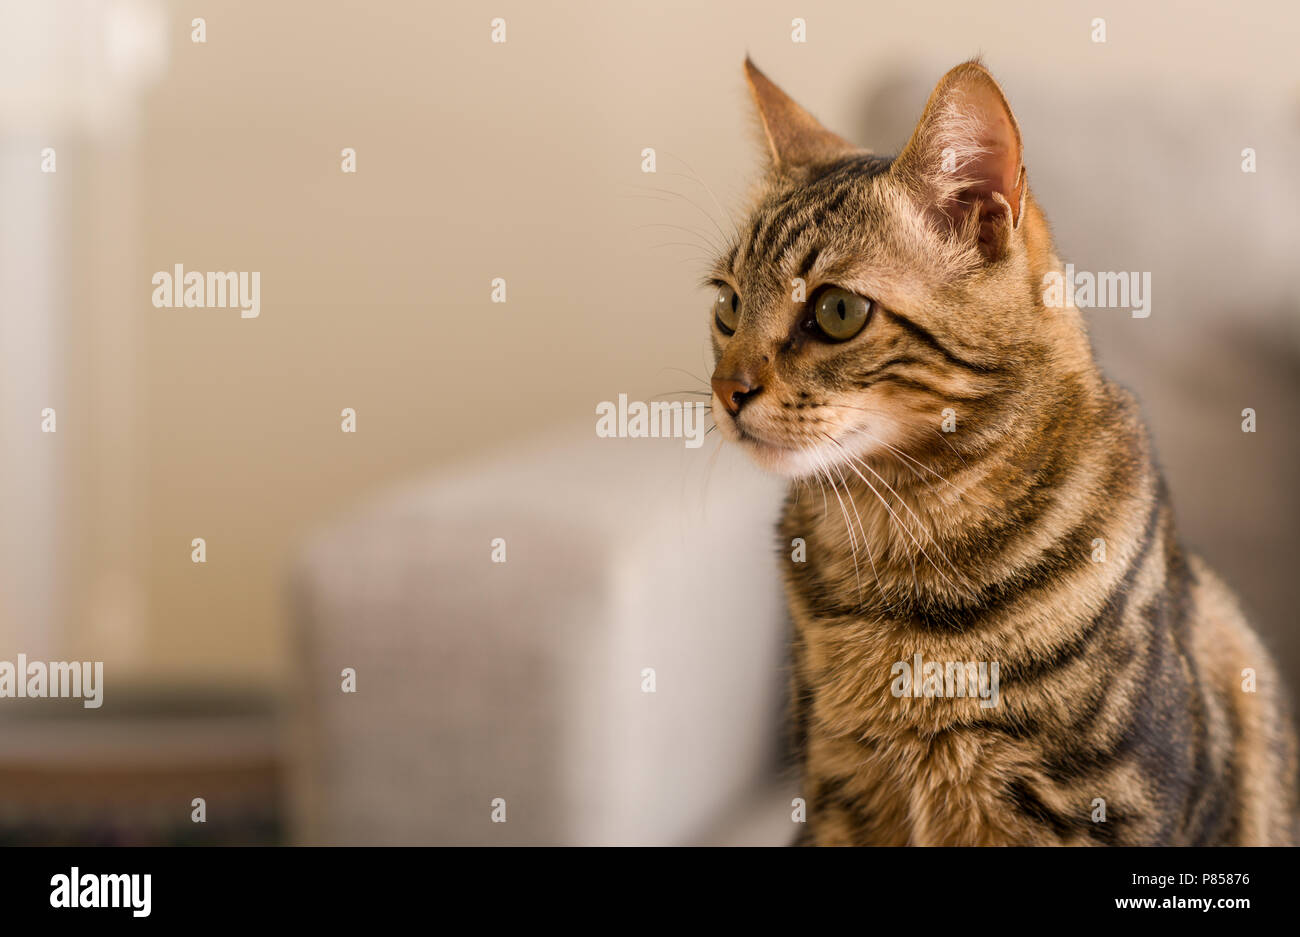 Domestic cat at home - Stock Image